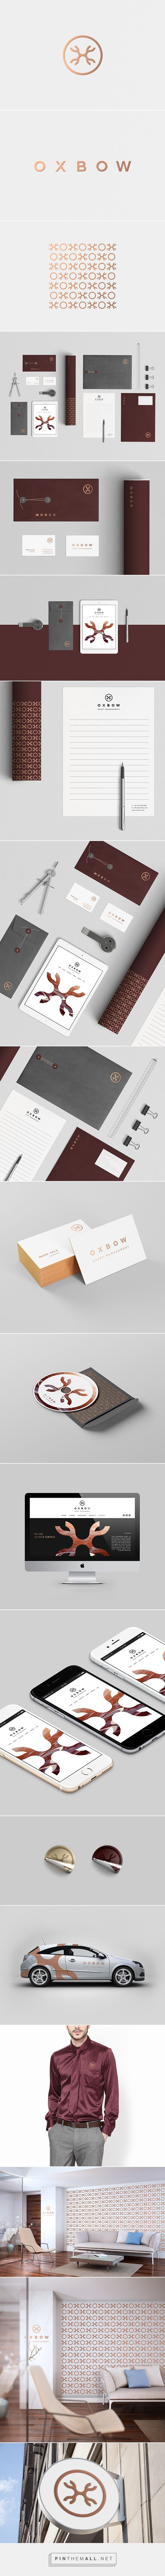 Oxbow Asset Management on Behance - - - - - - - - - - - - - -... - a grouped images picture - Pin Them All